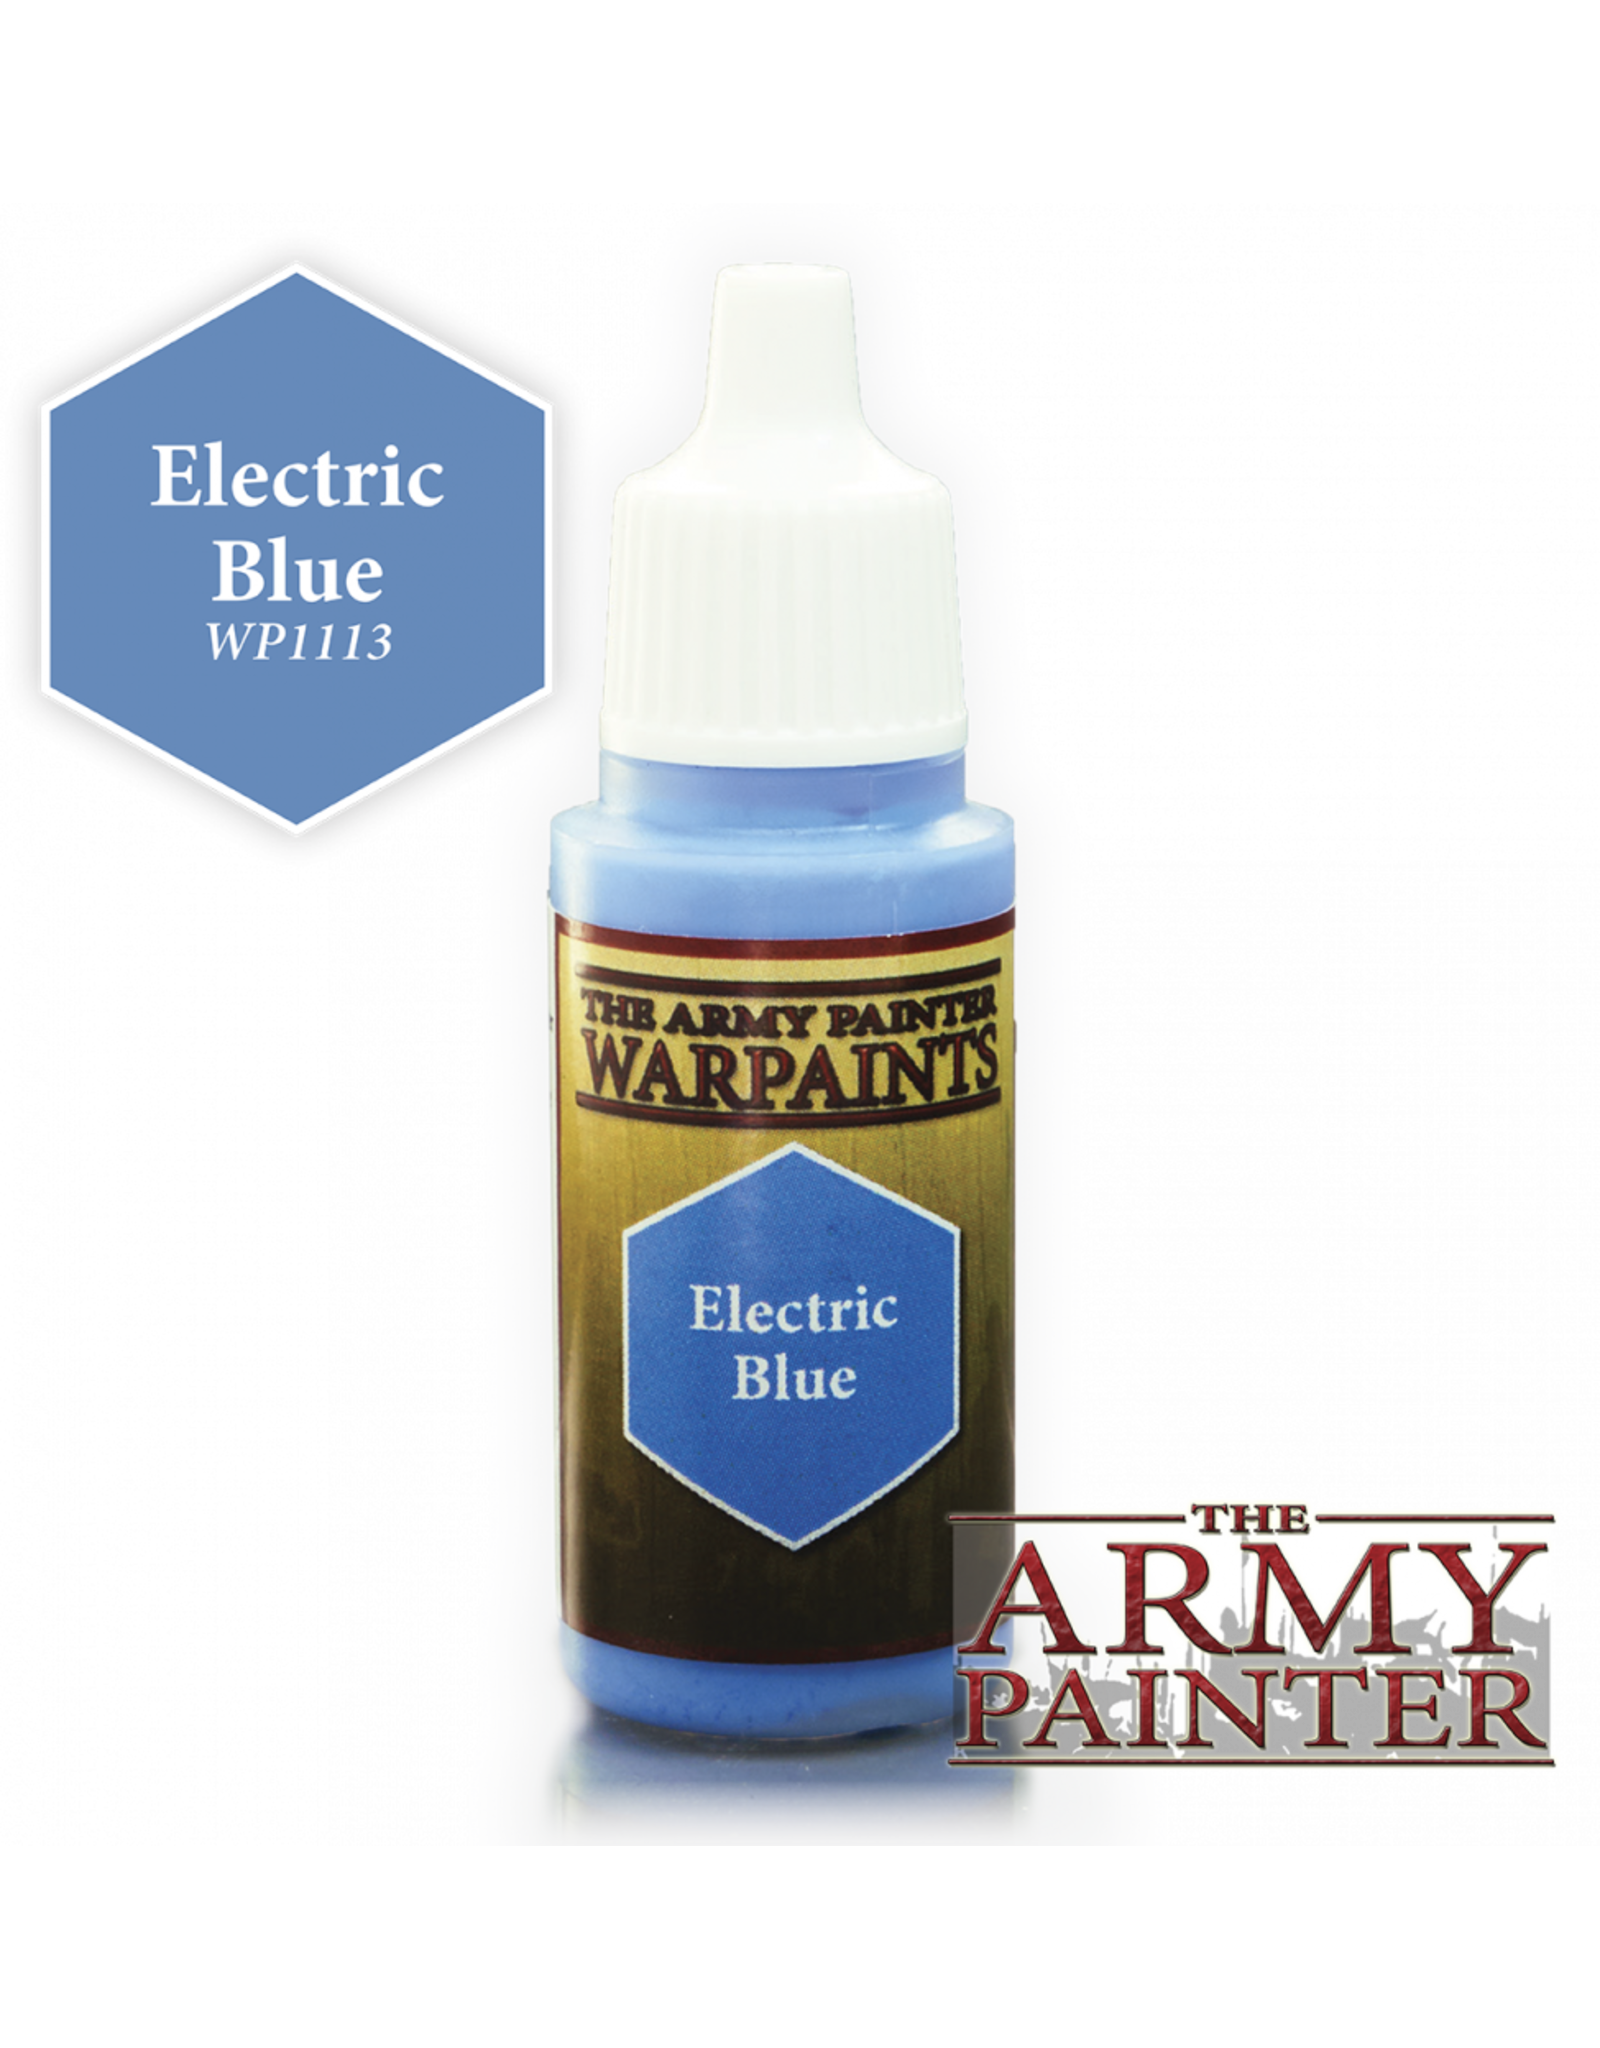 THE ARMY PAINTER ARMY PAINTER WARPAINTS ELECTRIC BLUE